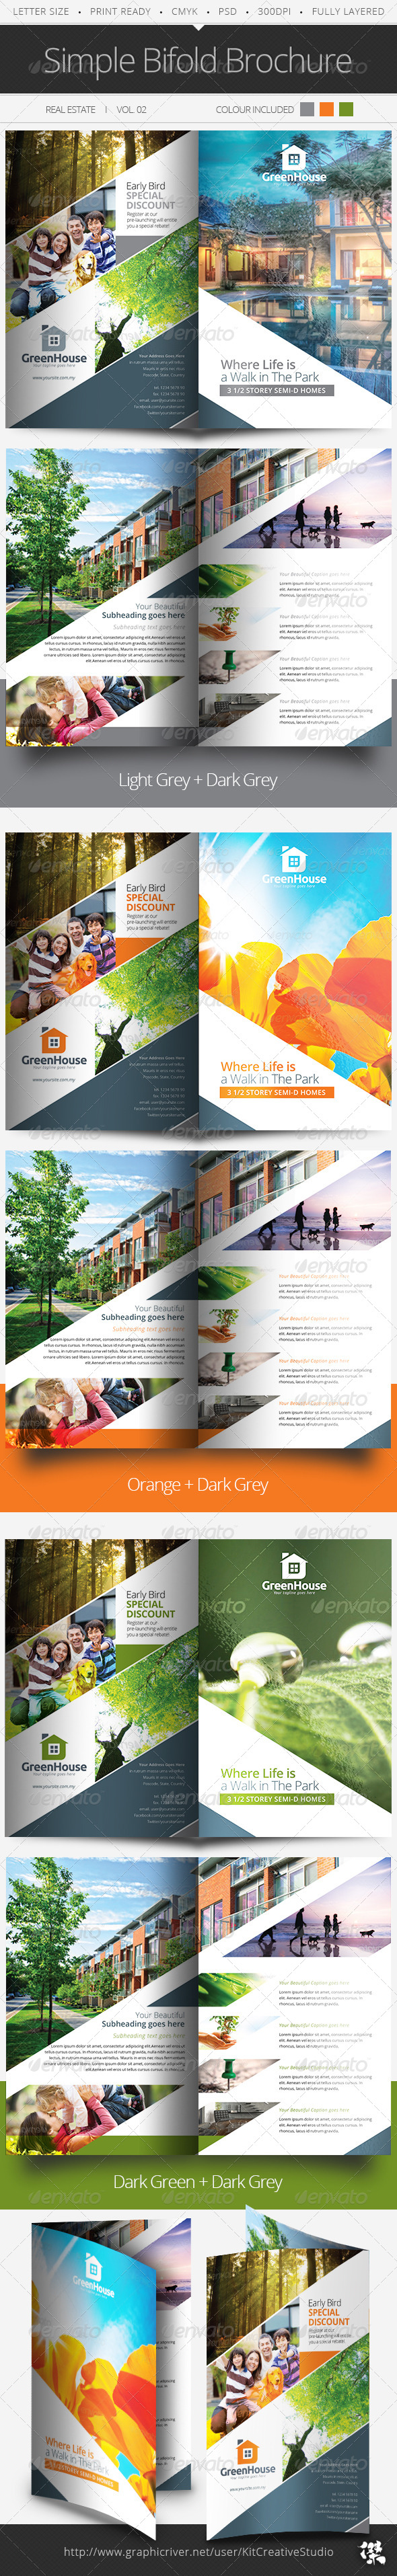 Simple Bifold Brochure Vol.02 - Informational Brochures